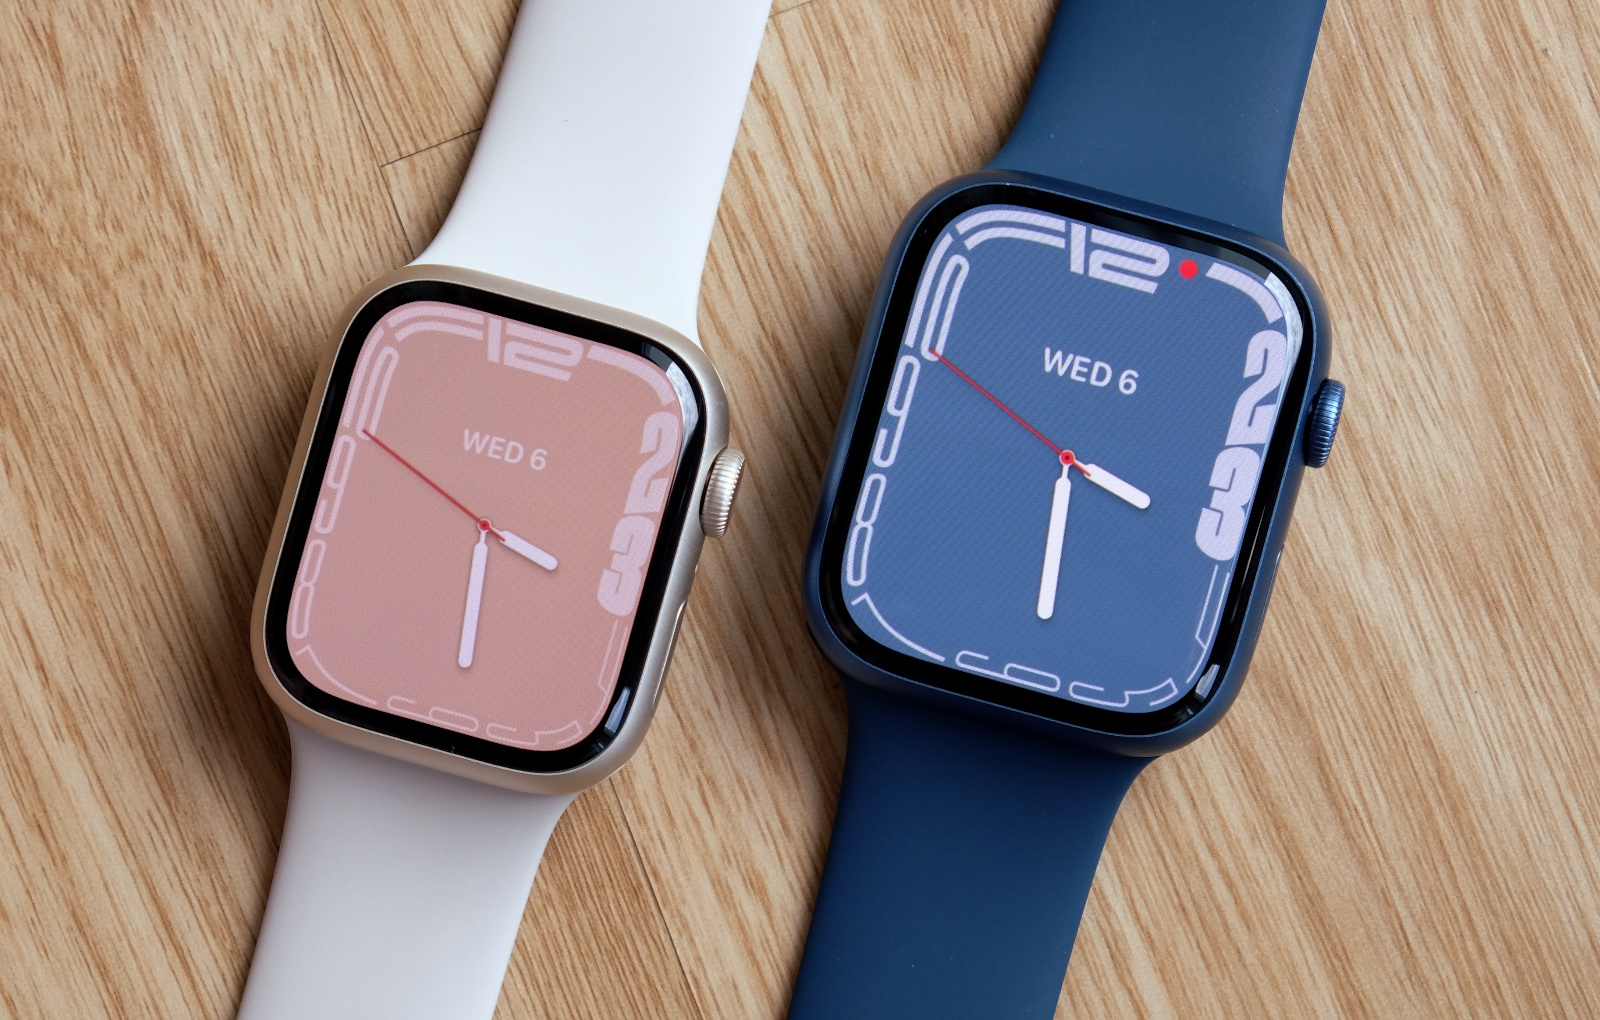 Regardless of which size you pick, the new Series 7 watches are expected to provide the same 18 hours of battery life.